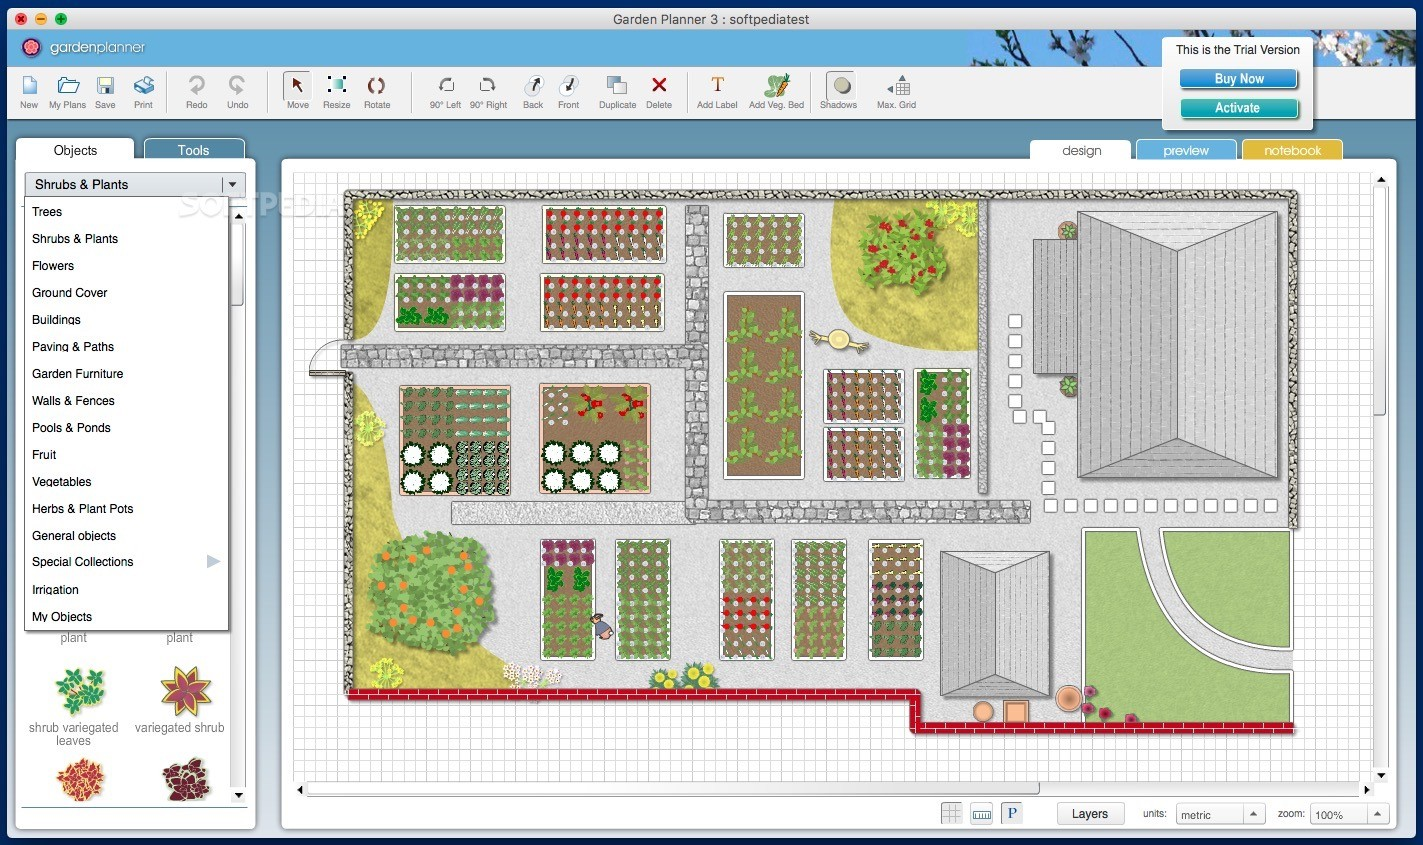 Garden Planner Mac 3.7.36 - Download